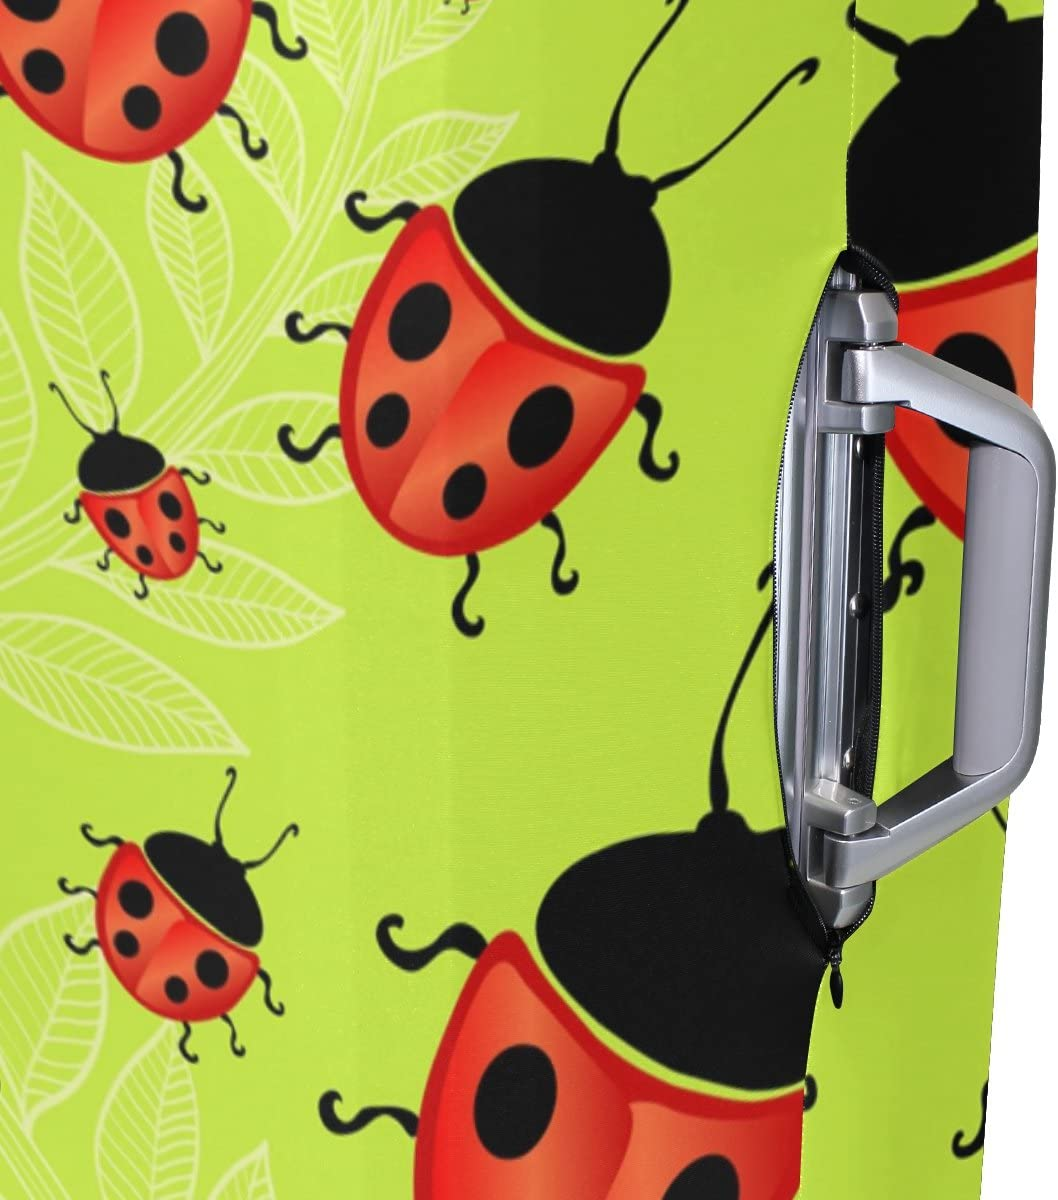 Luggage Protective Covers with Red Ladybug Washable Travel Luggage Cover 18-32 Inch